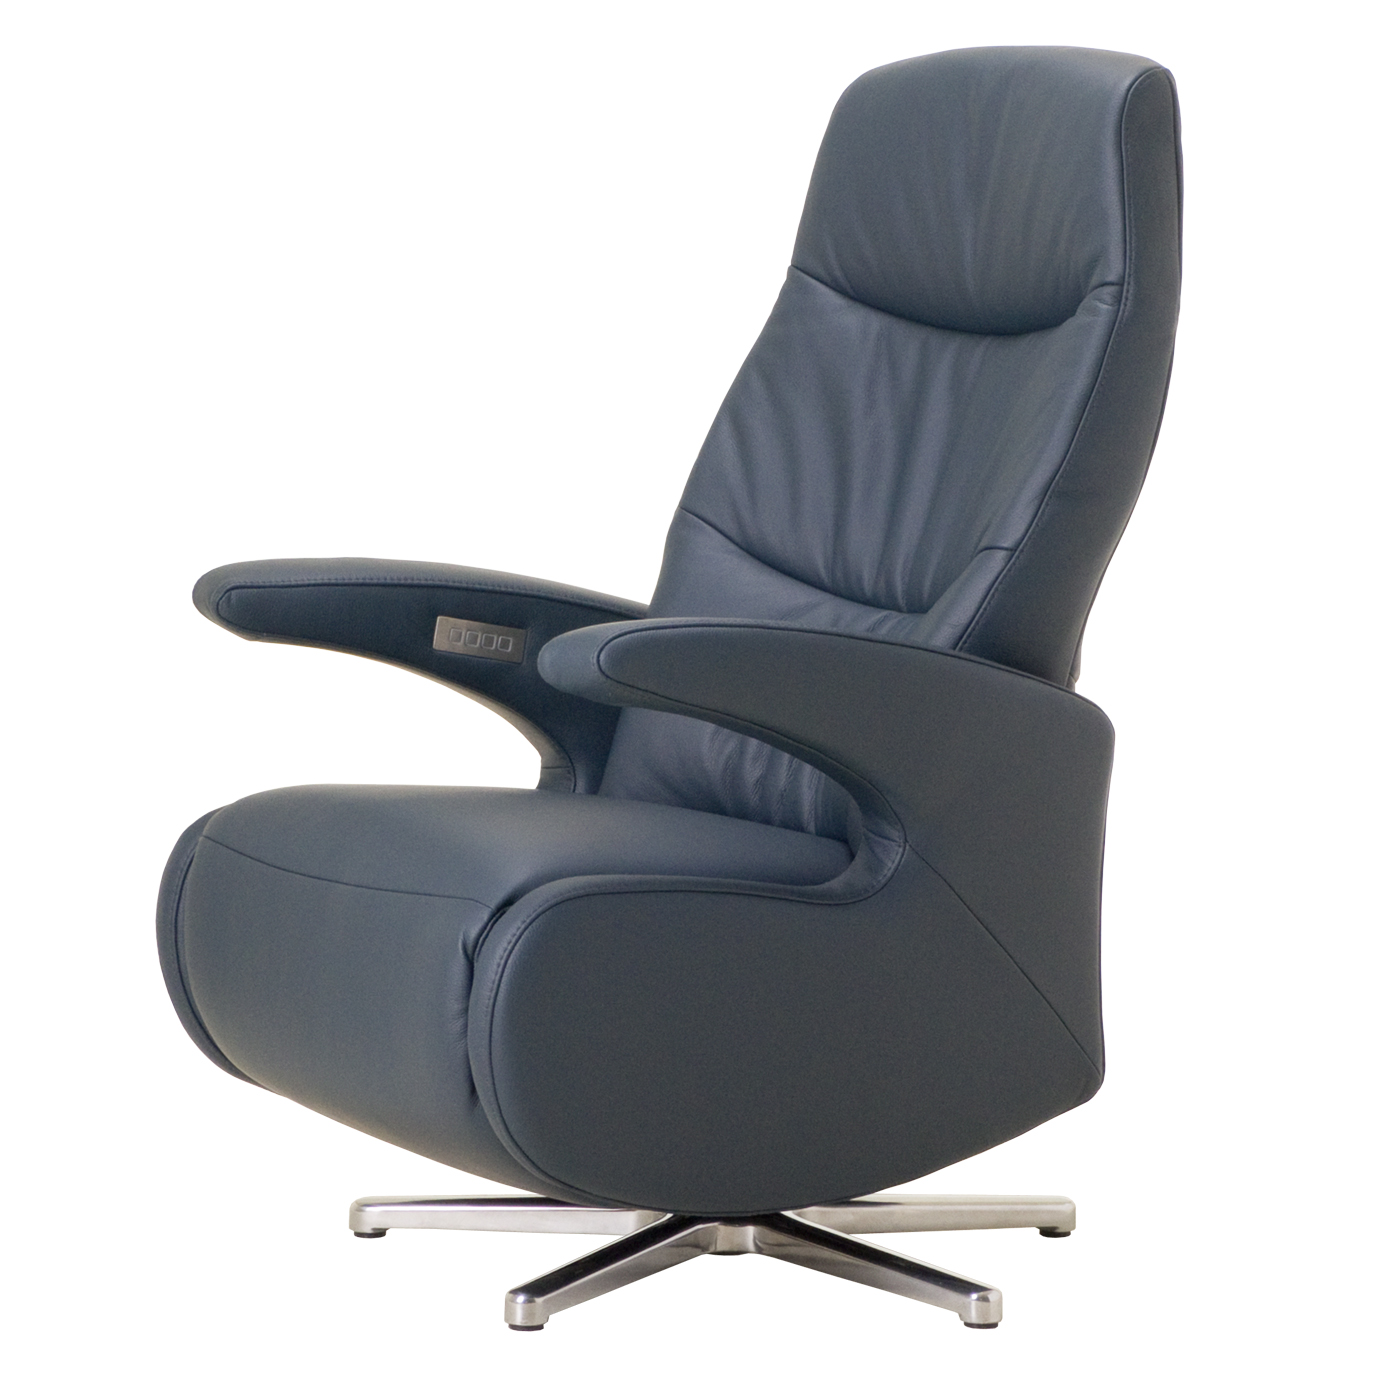 Magic MG-A03 relaxfauteuil